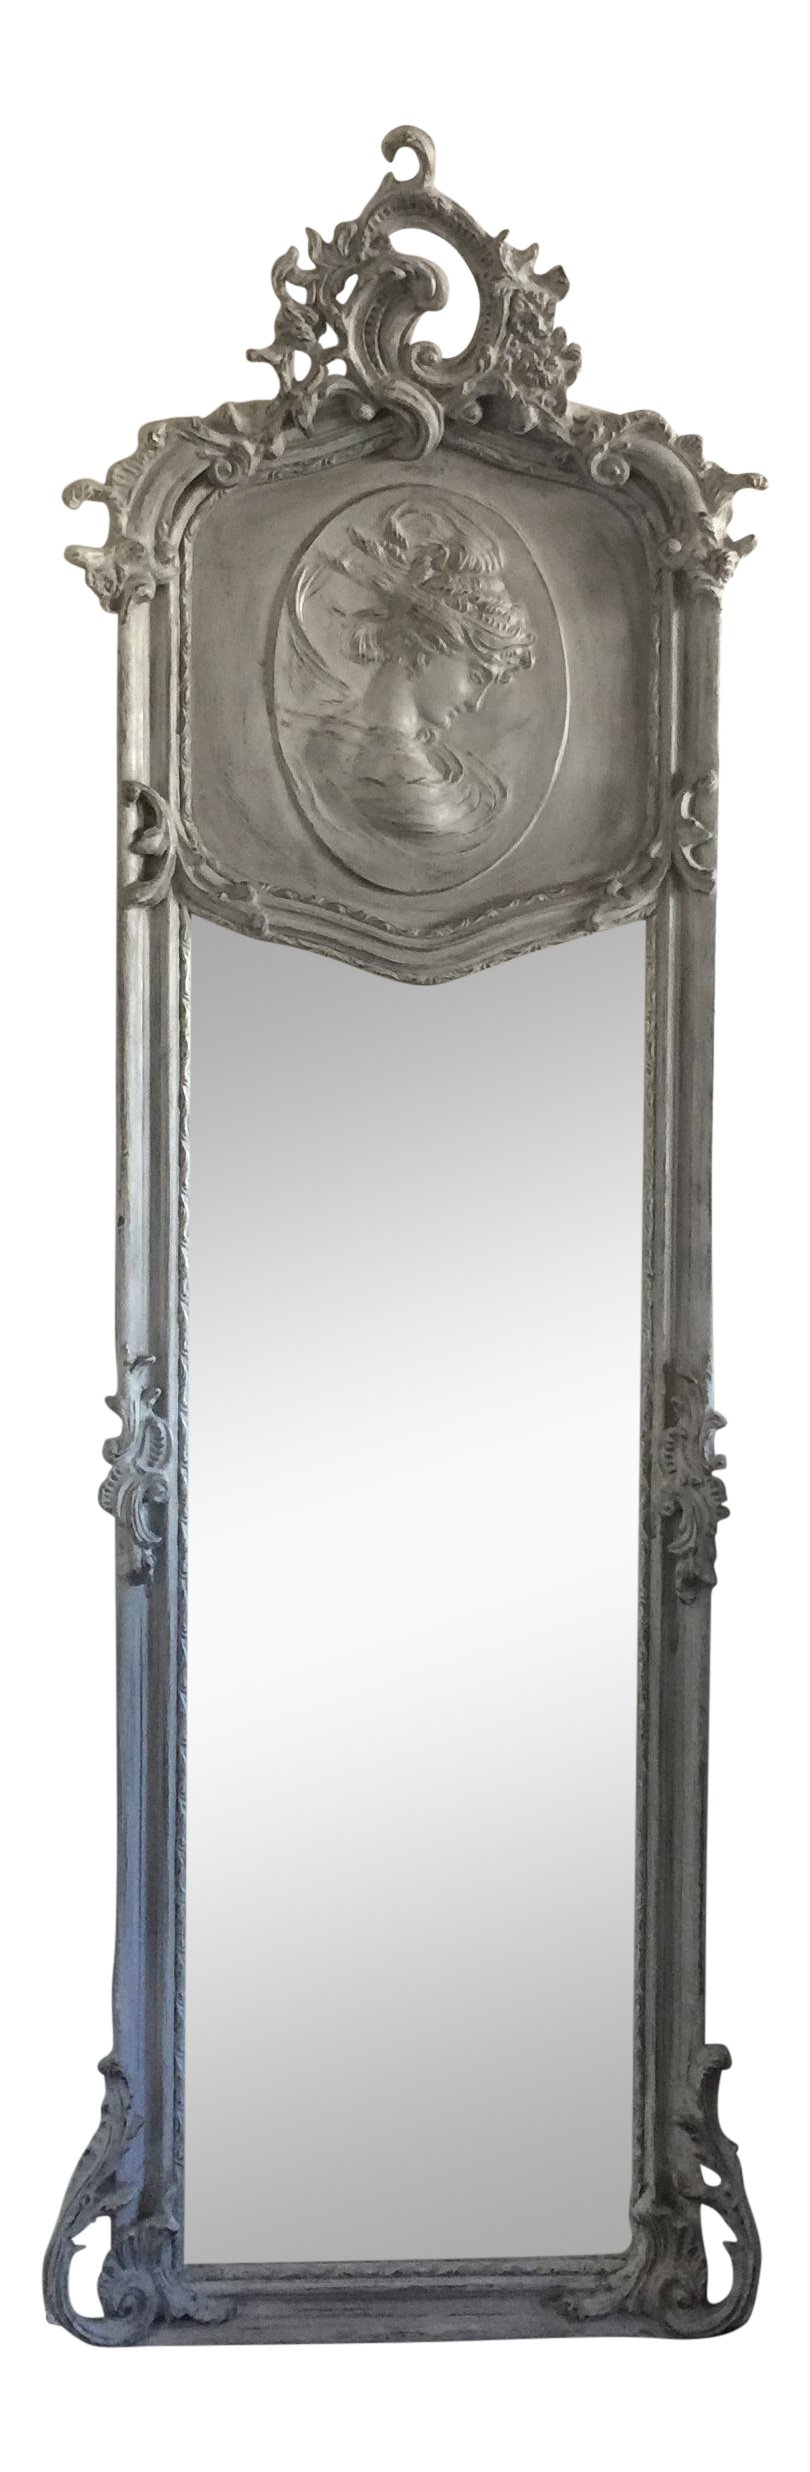 Grey relief beveled floor mirror chairish for Gray full length mirror